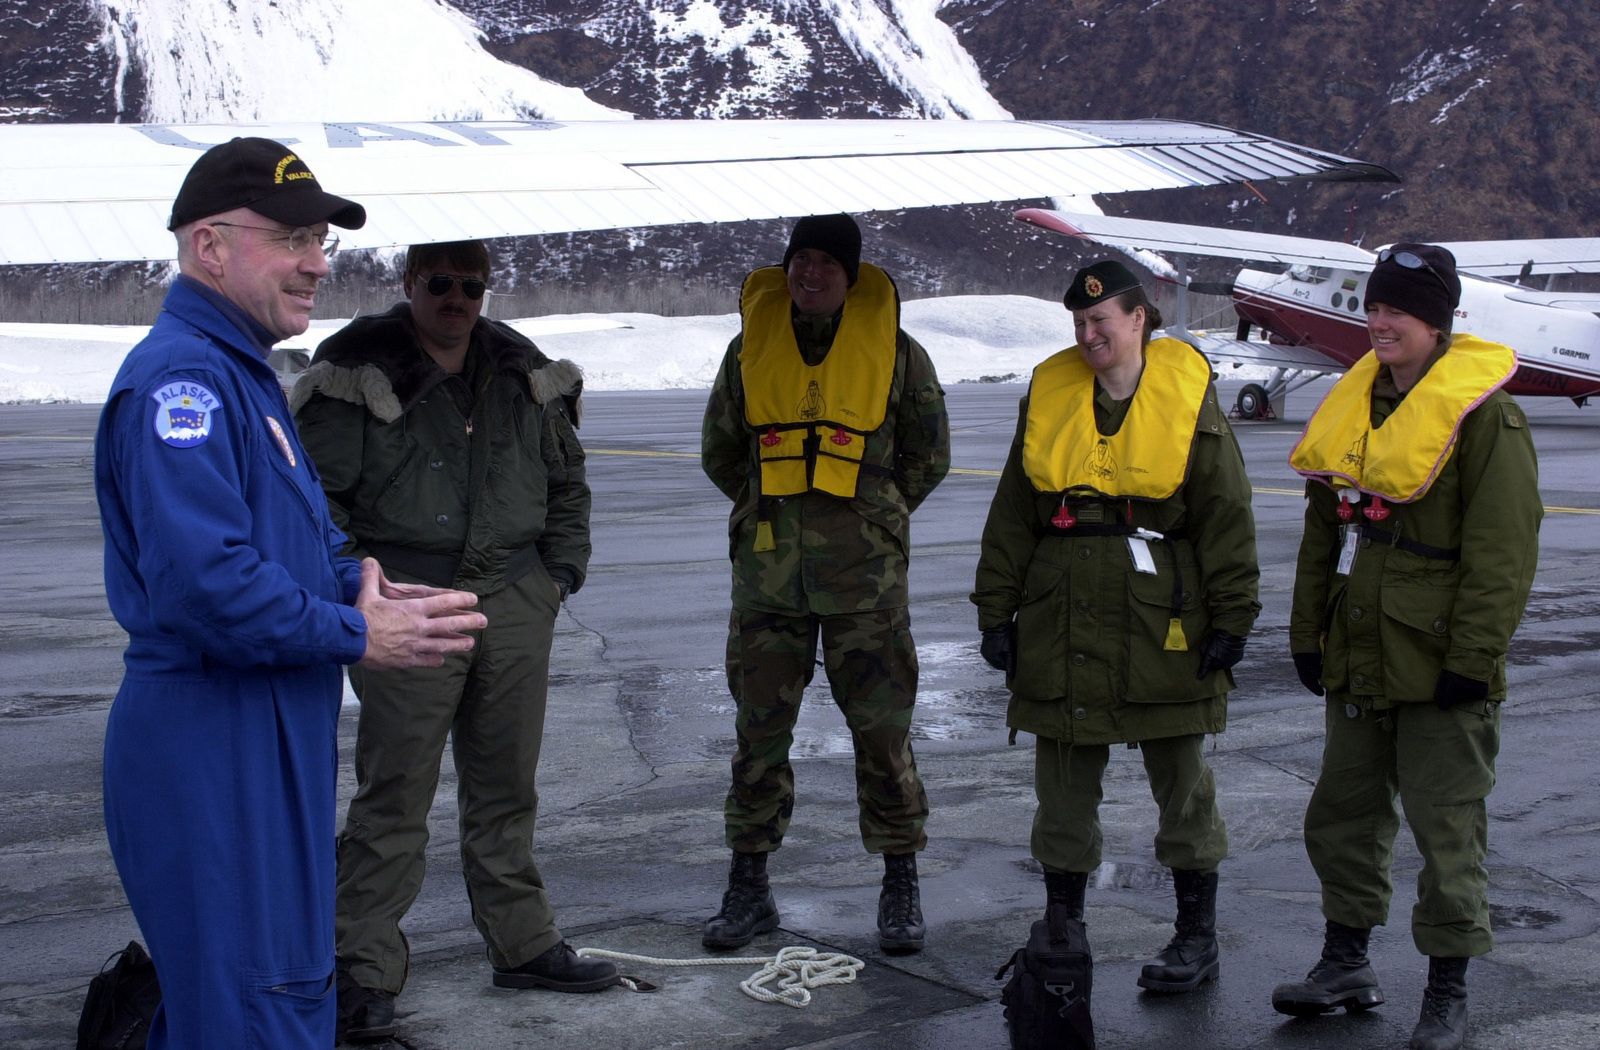 Mr. H. A. Horvath (left), a member of the US Air Force (USAF) Civil Air Patrol (CAP), gives a preflight briefing to Mr. Larry Huling, CAP; US Navy (USN) PETTY Officer First Class (PO1) Troy Roat, assigned to Detachment 1 (DET1), Mobile Diving and Salvage Unit 1(MDSU-1); Royal Canadian Navy (RCN) MASTER Corporal Debra Bowcott; and RCN Leading SEAMAN (LS) Kerri Edison, assigned to the Port Inspection Dive Team (PIDT), Esquimalt, British Columbia; before a flight at Port Valdez, Alaska, during Operation NORTHERN EDGE 2002. A Garmin AN-2 bi-plane is visible in the background